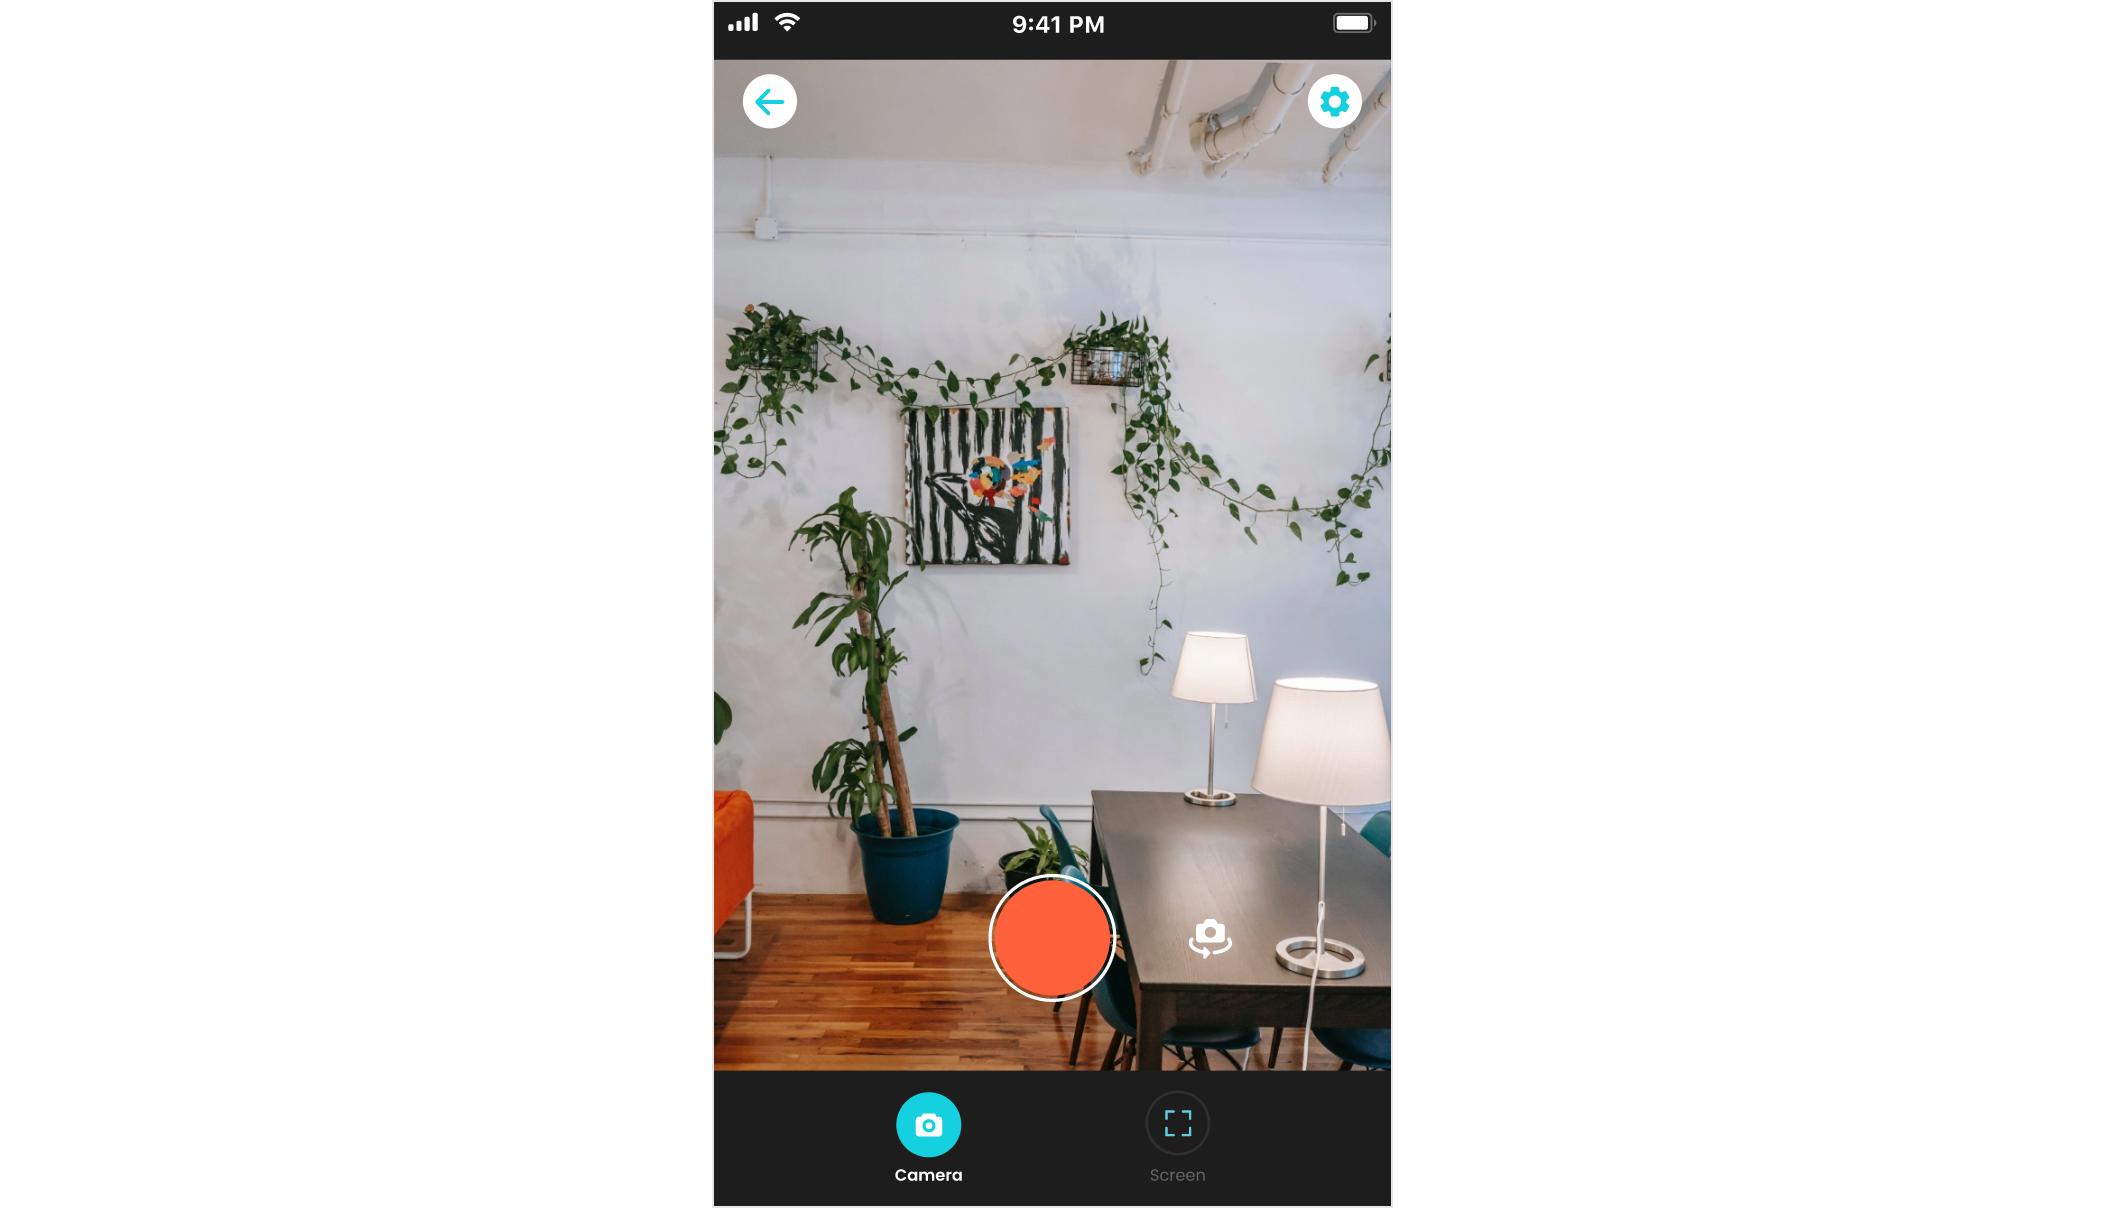 Record screen or Cam for unlimited duration on your Iphone using Vmaker ios app